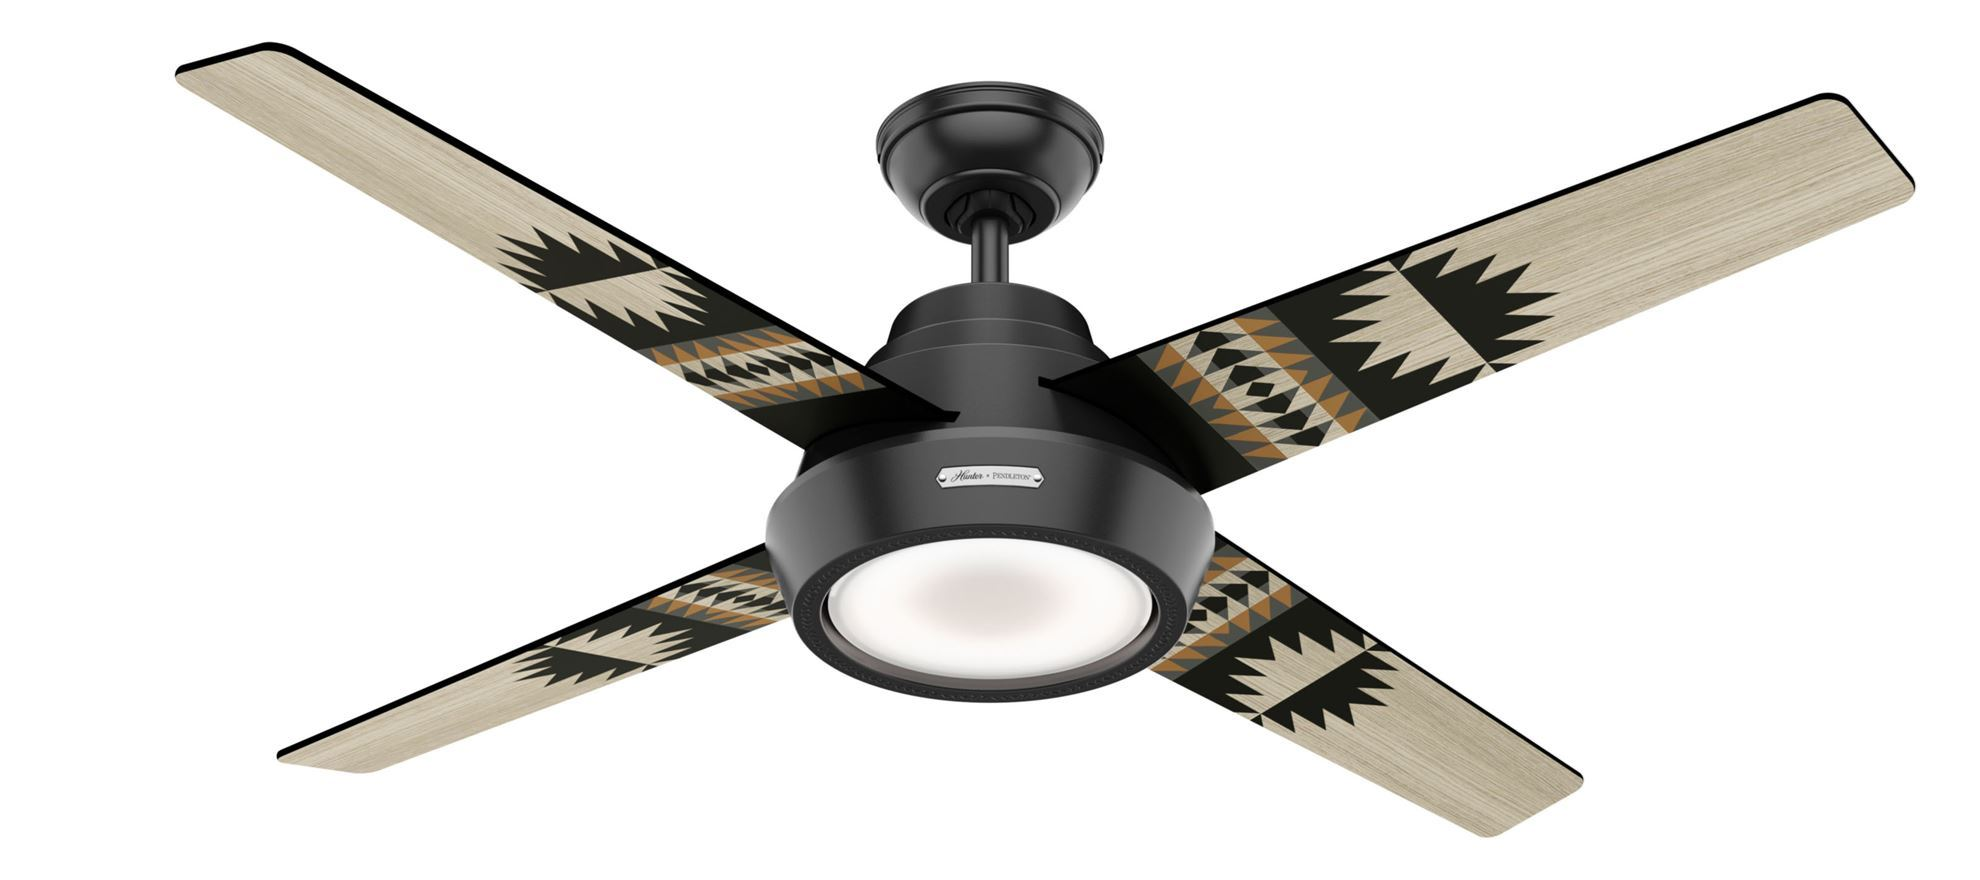 Hunter 54 Pendelton Spider Rock Eagle Rock Matte Black Ceiling Fan With Light Model 59389 Dan S Fan City C Ceiling Fans Fan Parts Accessories